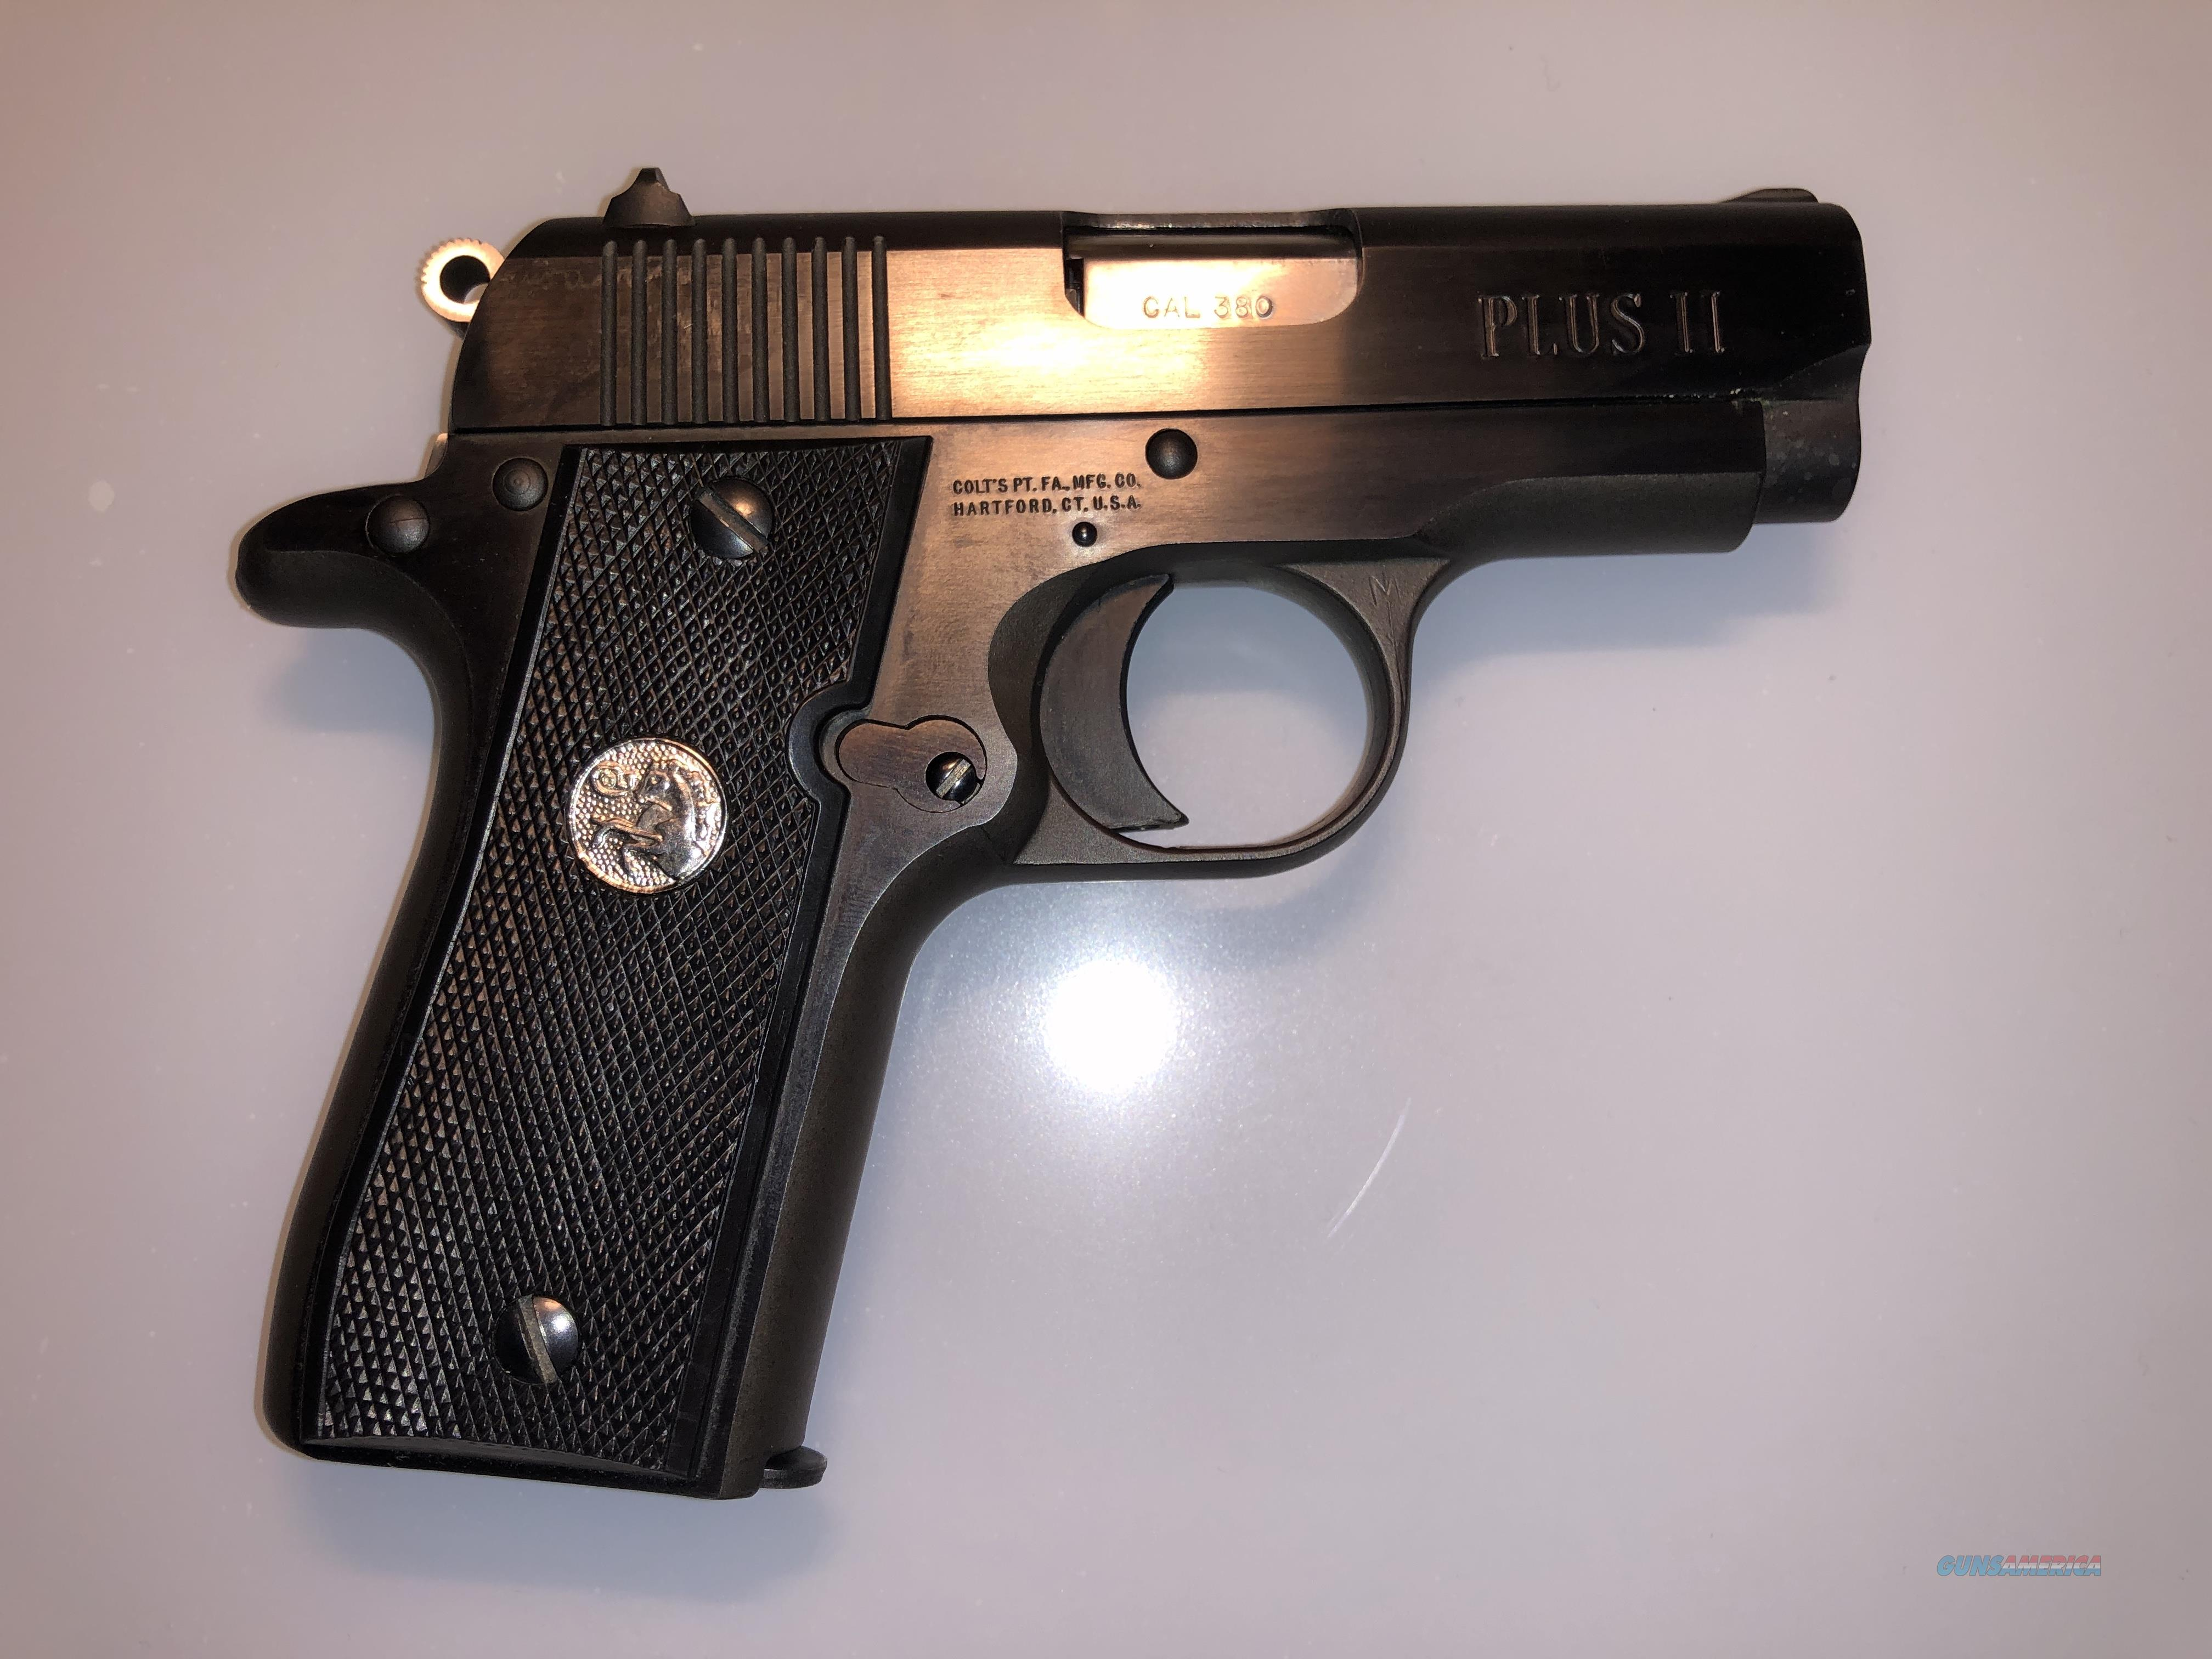 Colt Mustang Plus II .380 ACP - With Box & 3 Mags - Like New  Guns > Pistols > Colt Automatic Pistols (.25, .32, & .380 cal)